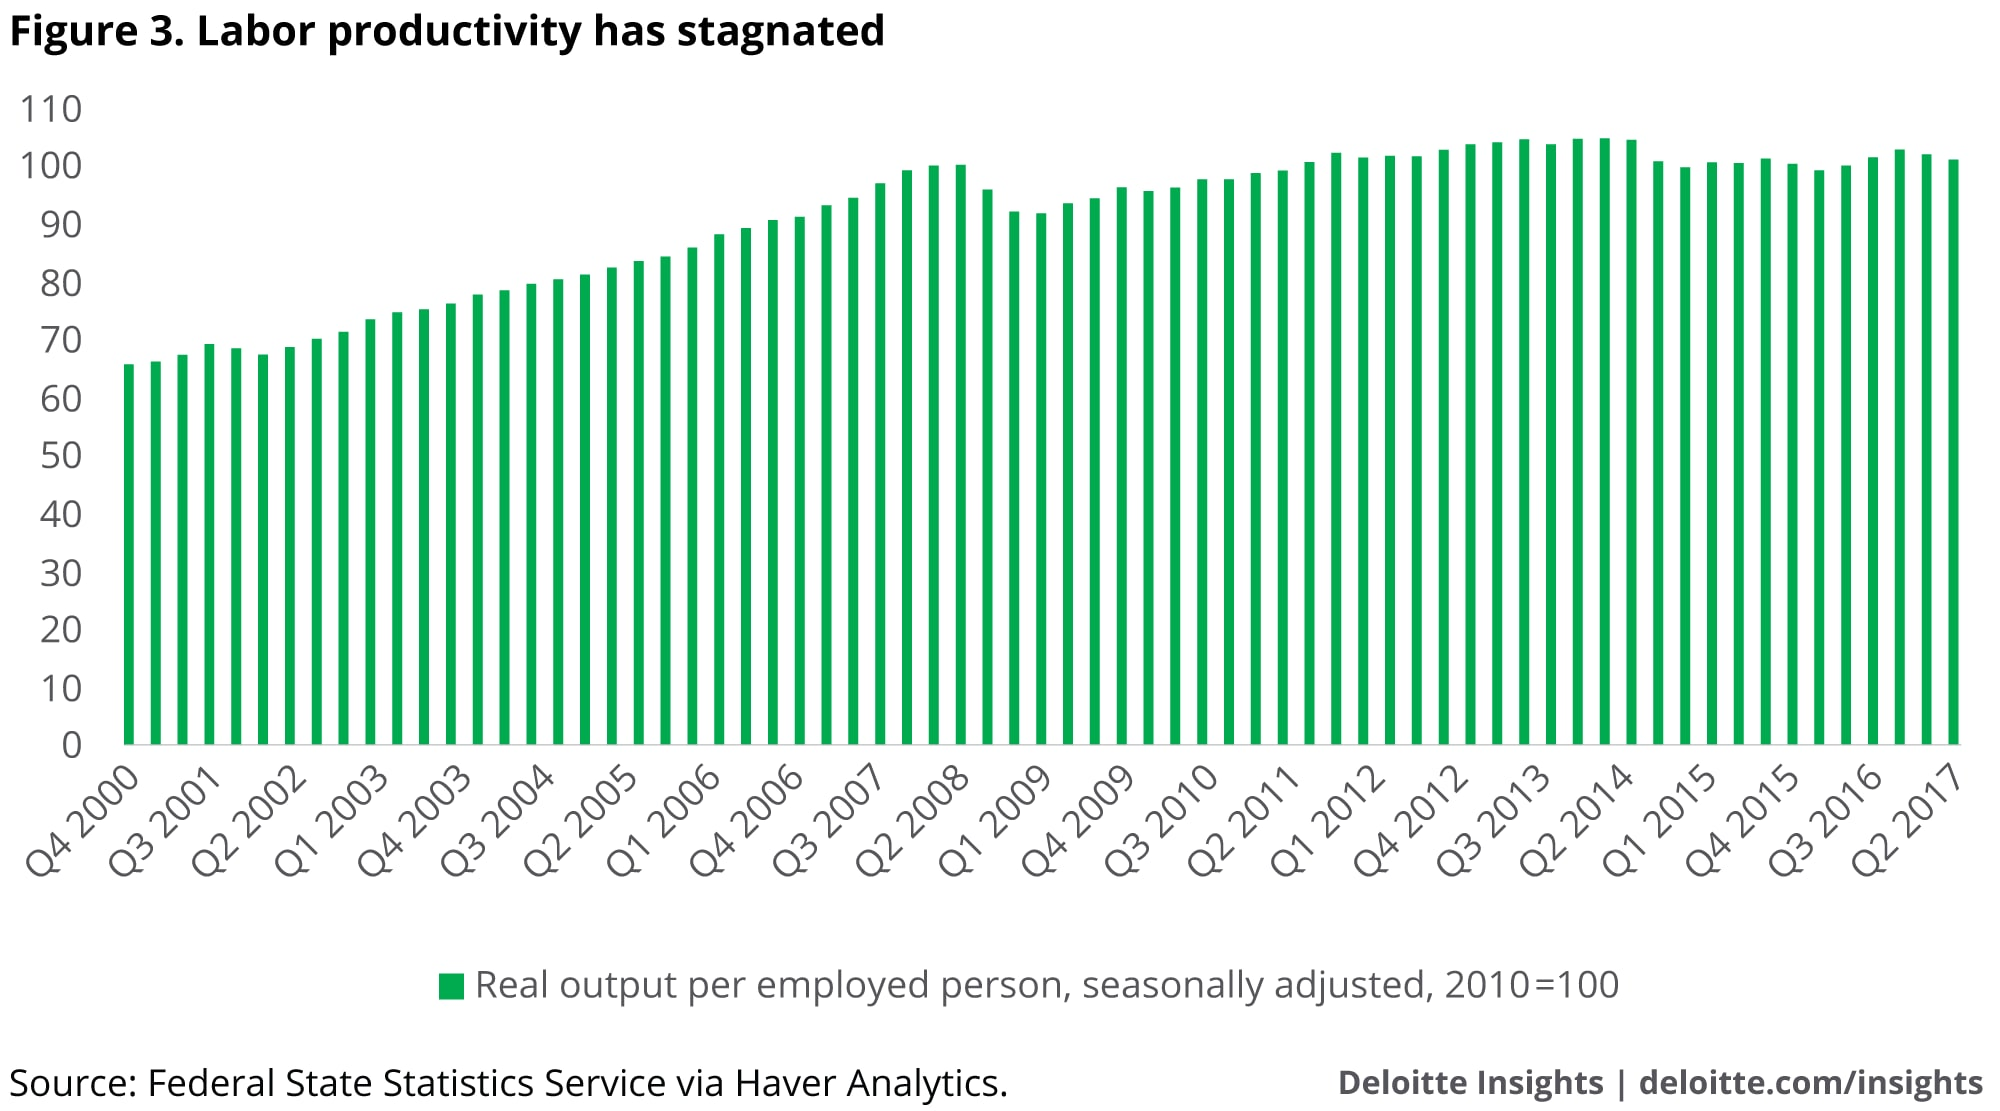 Labor productivity has stagnated